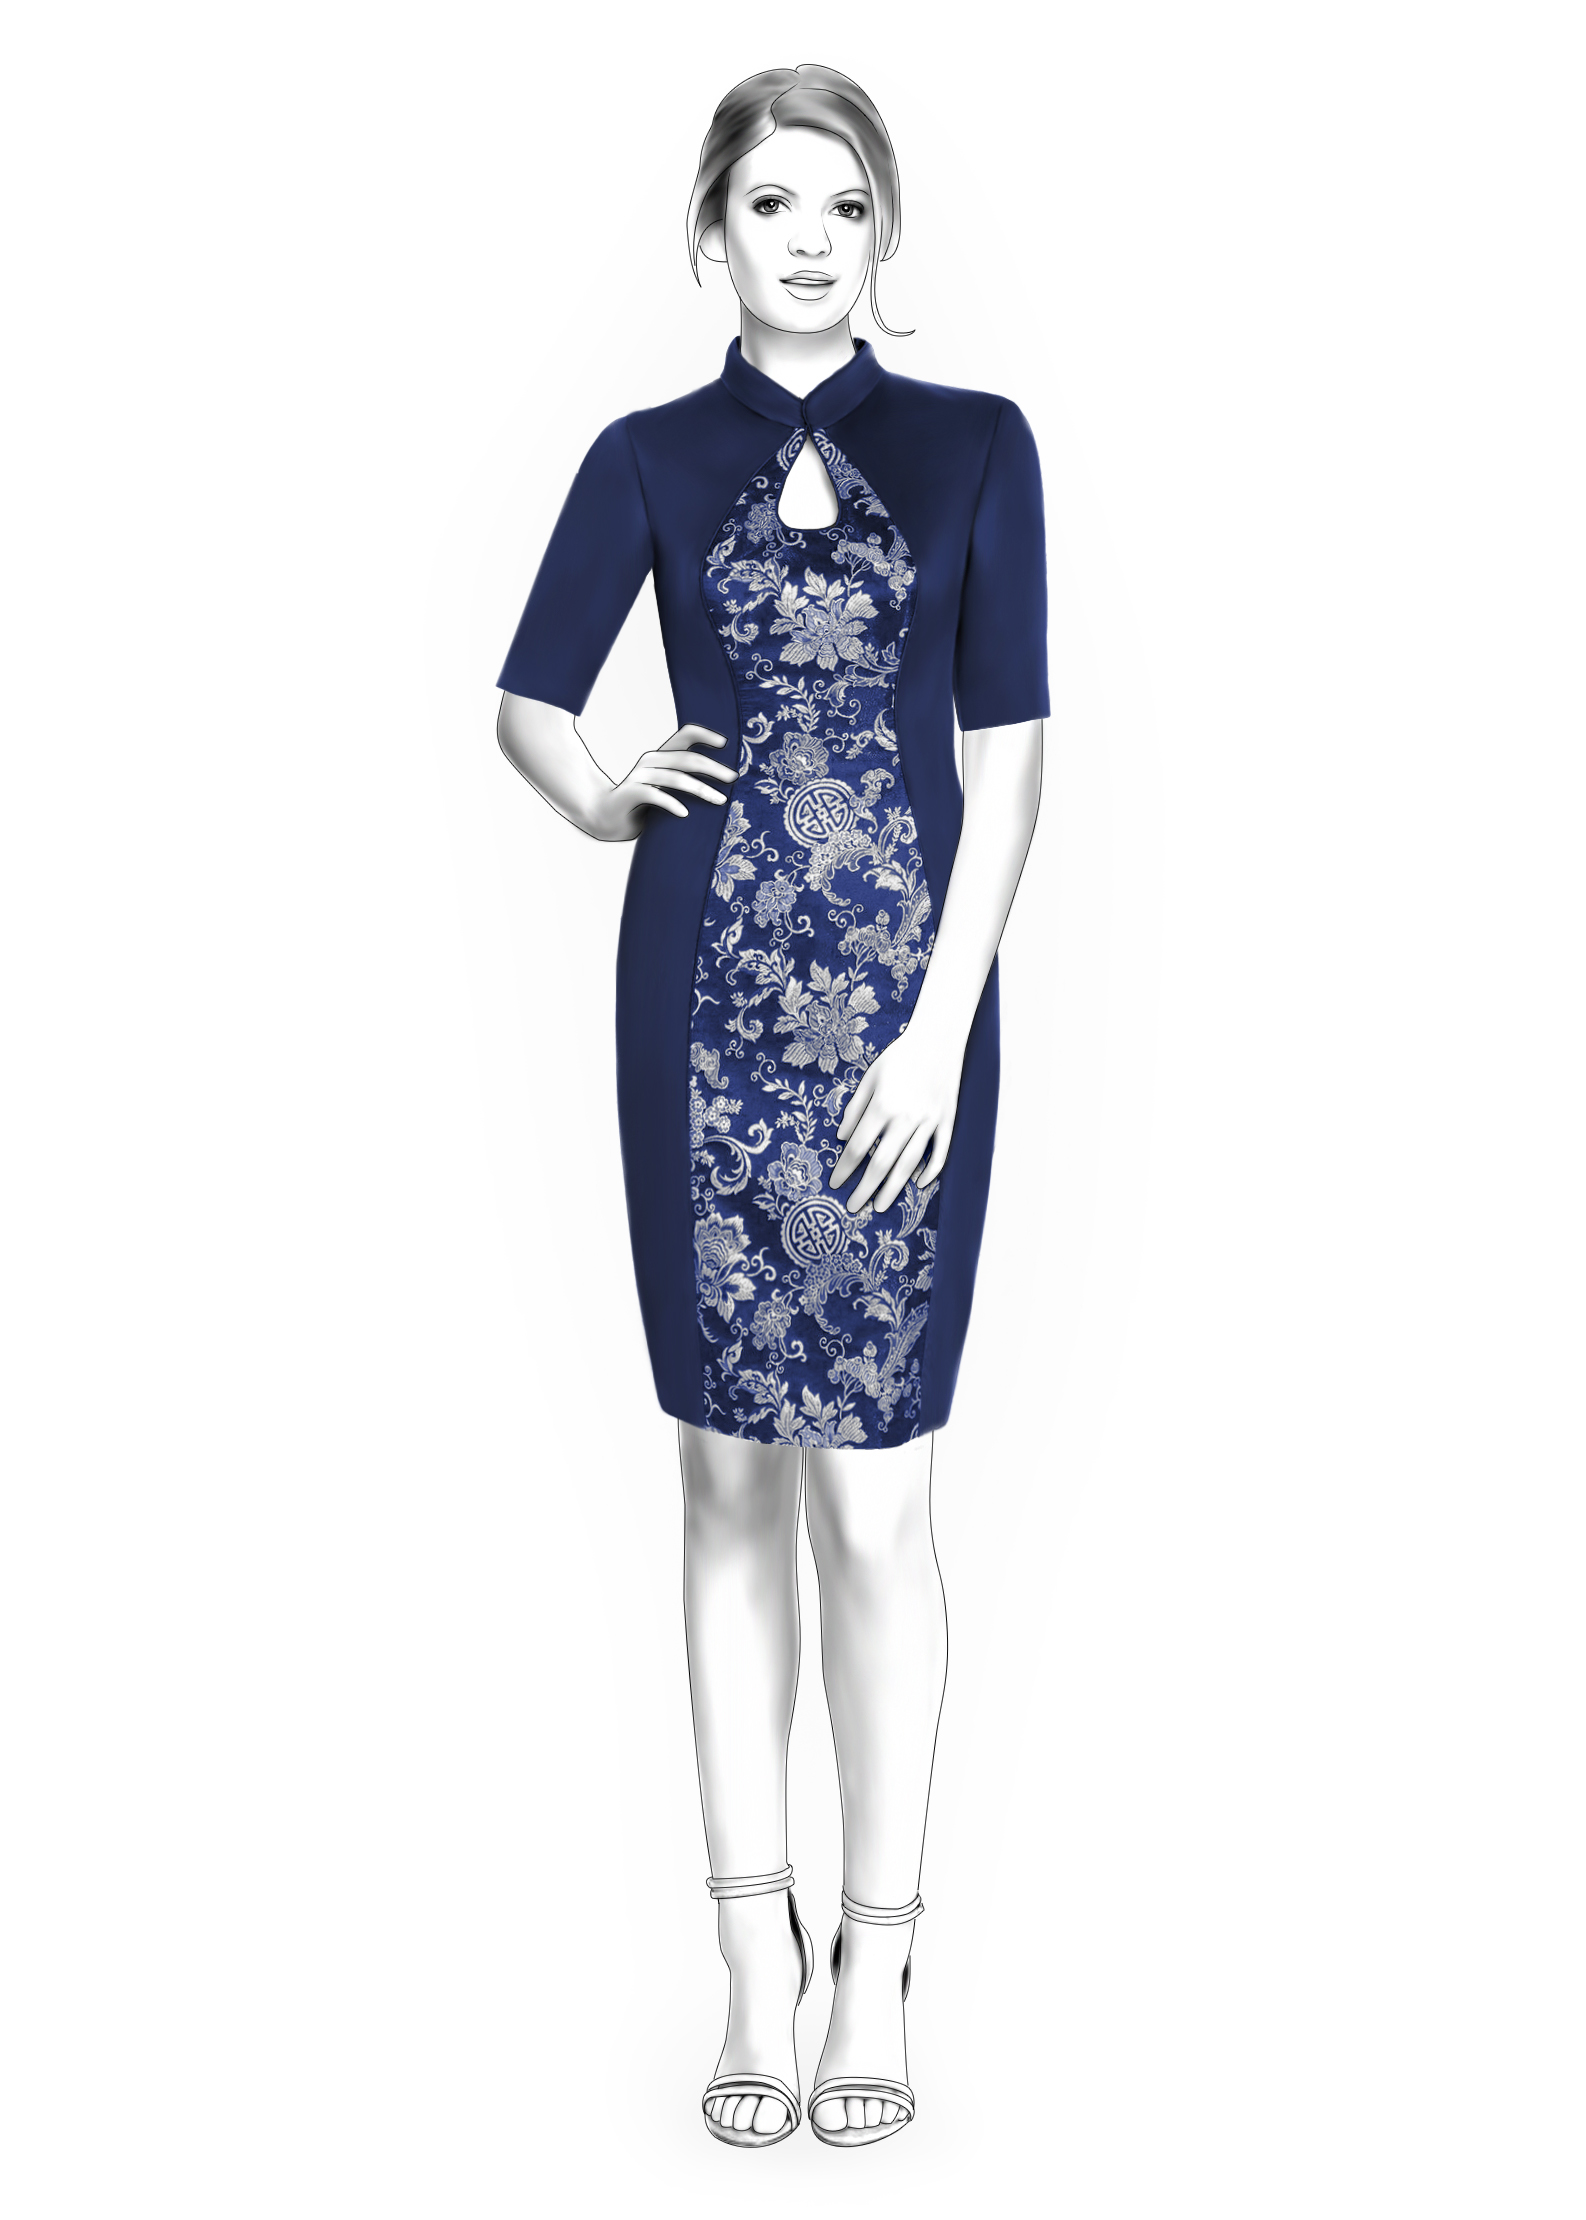 Dress With Mandarin Collar Teardrop Neckline And Inset In